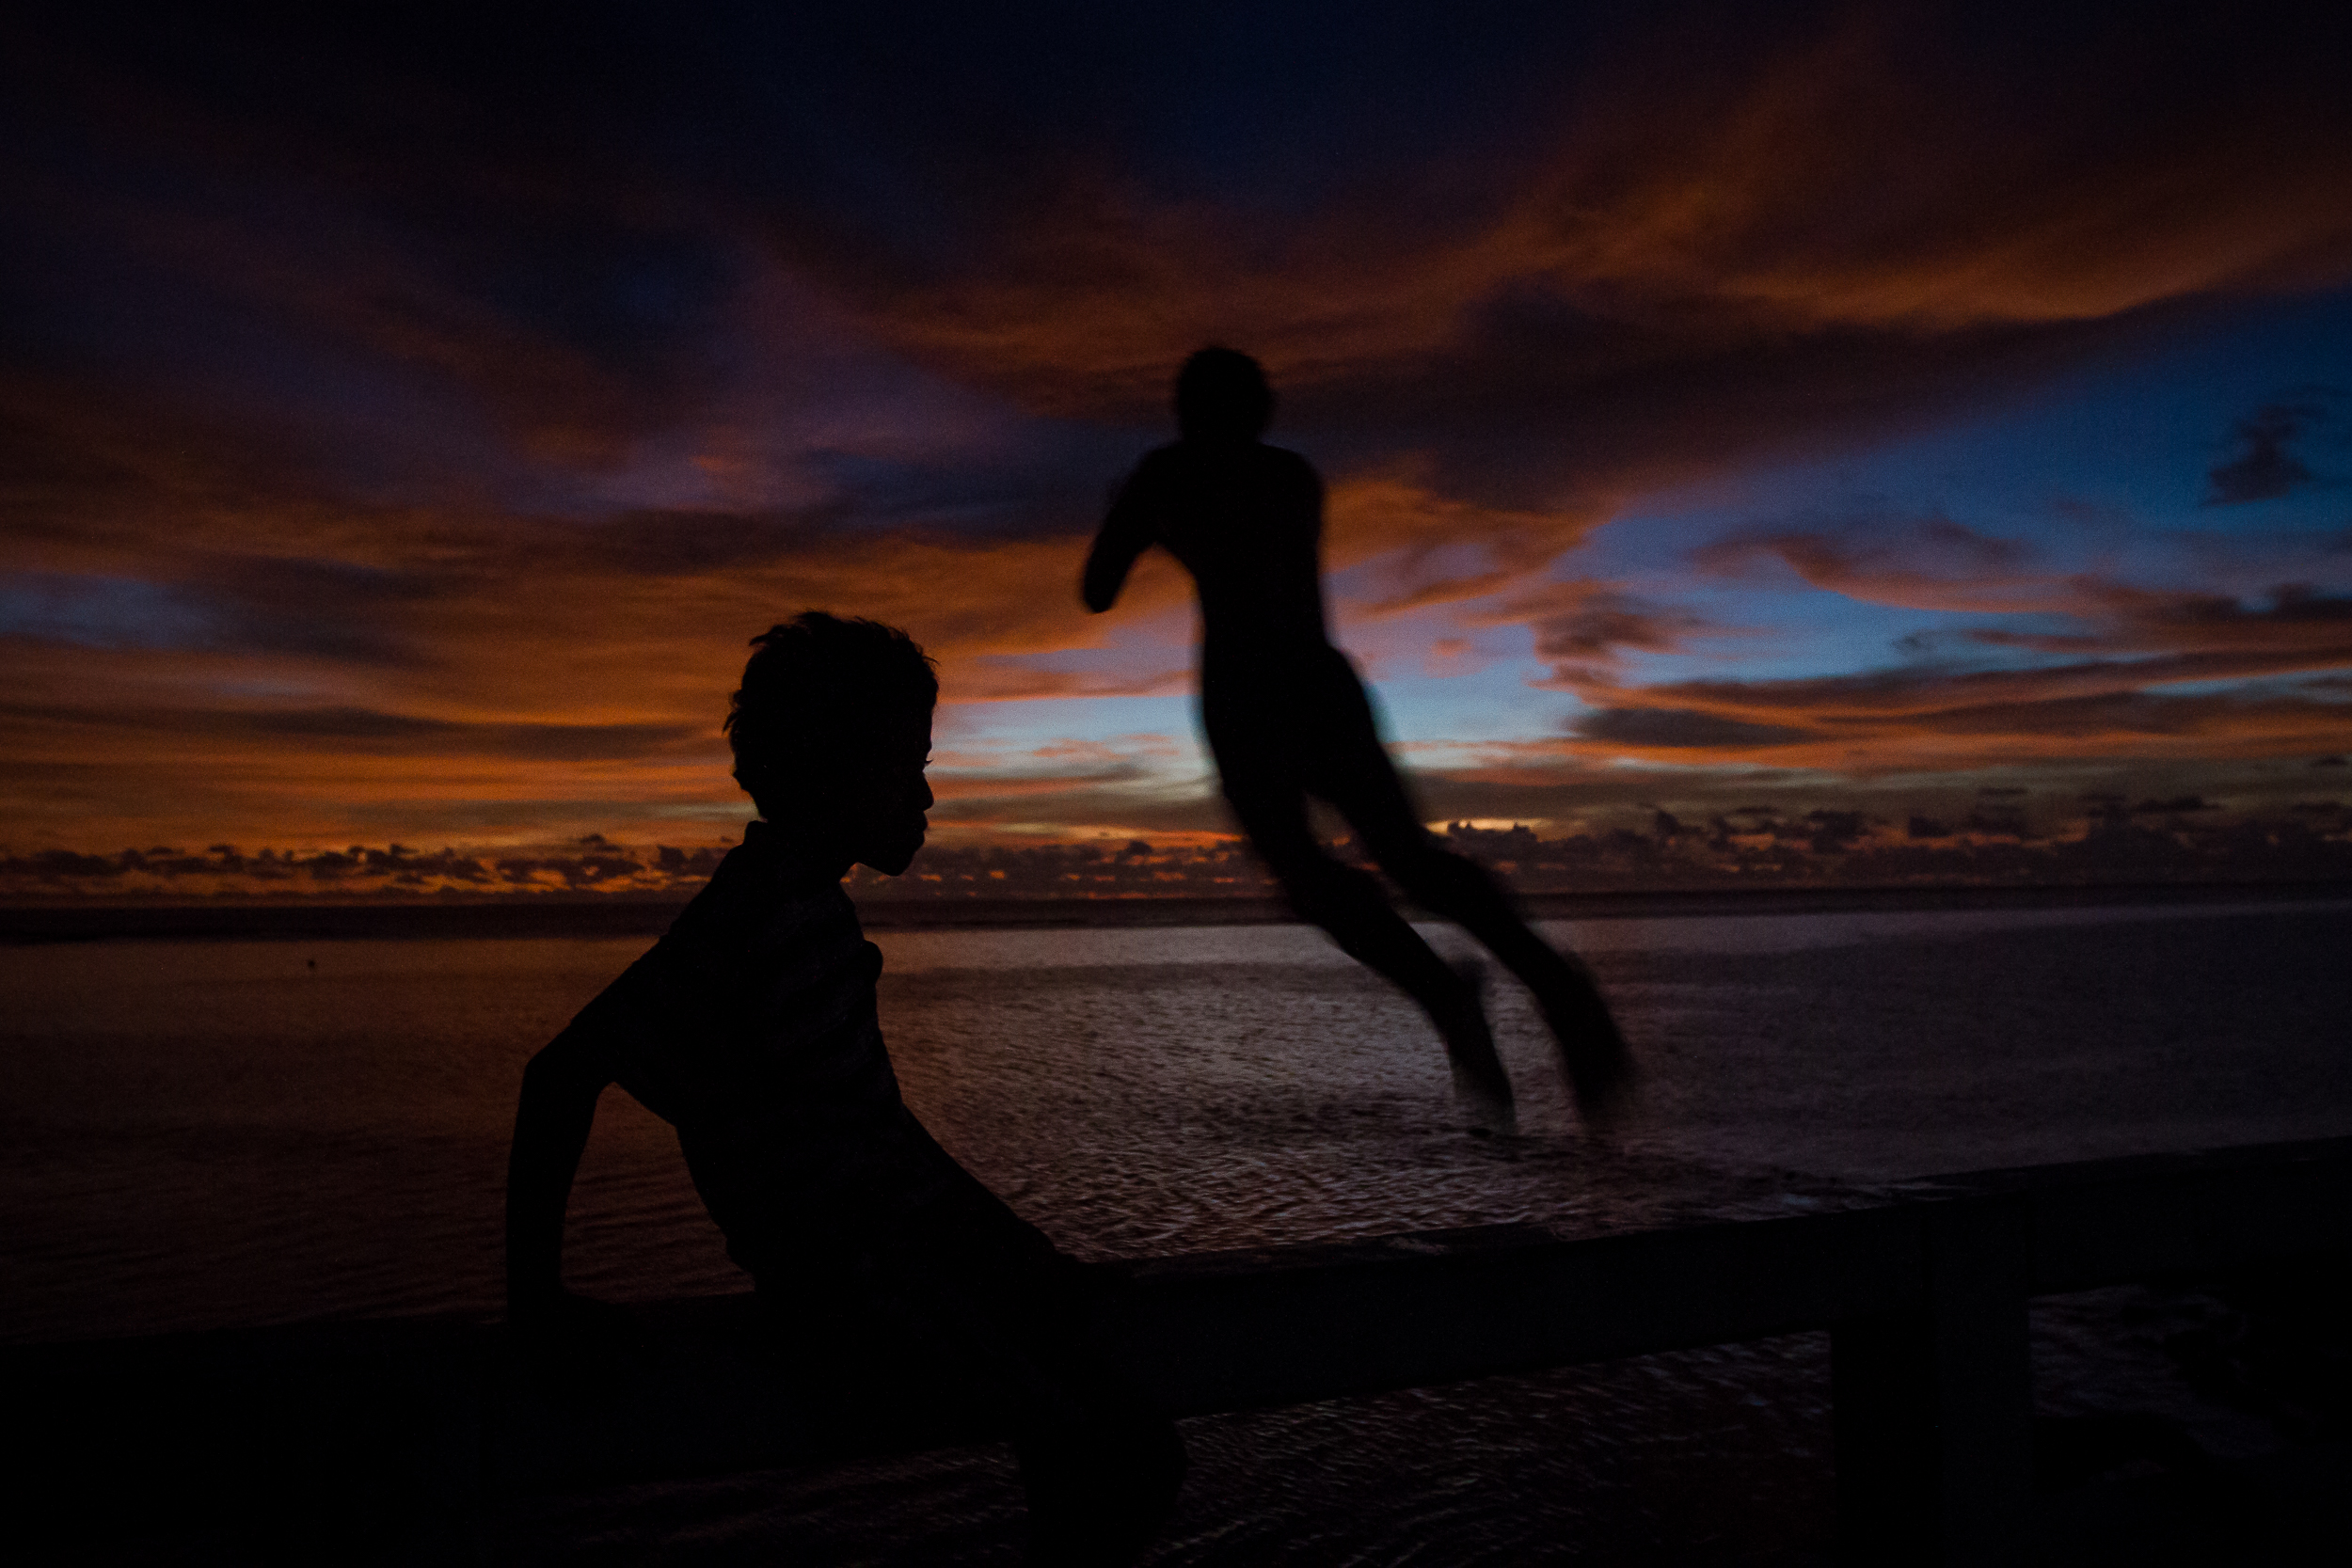 As the tide comes in and the sun sets, a young boy gets in one final jump from a bridge in Tarawa. With global temperatures still increasing and sea level rise continuing to accelerate, the future of these atolls hangs in the balance.